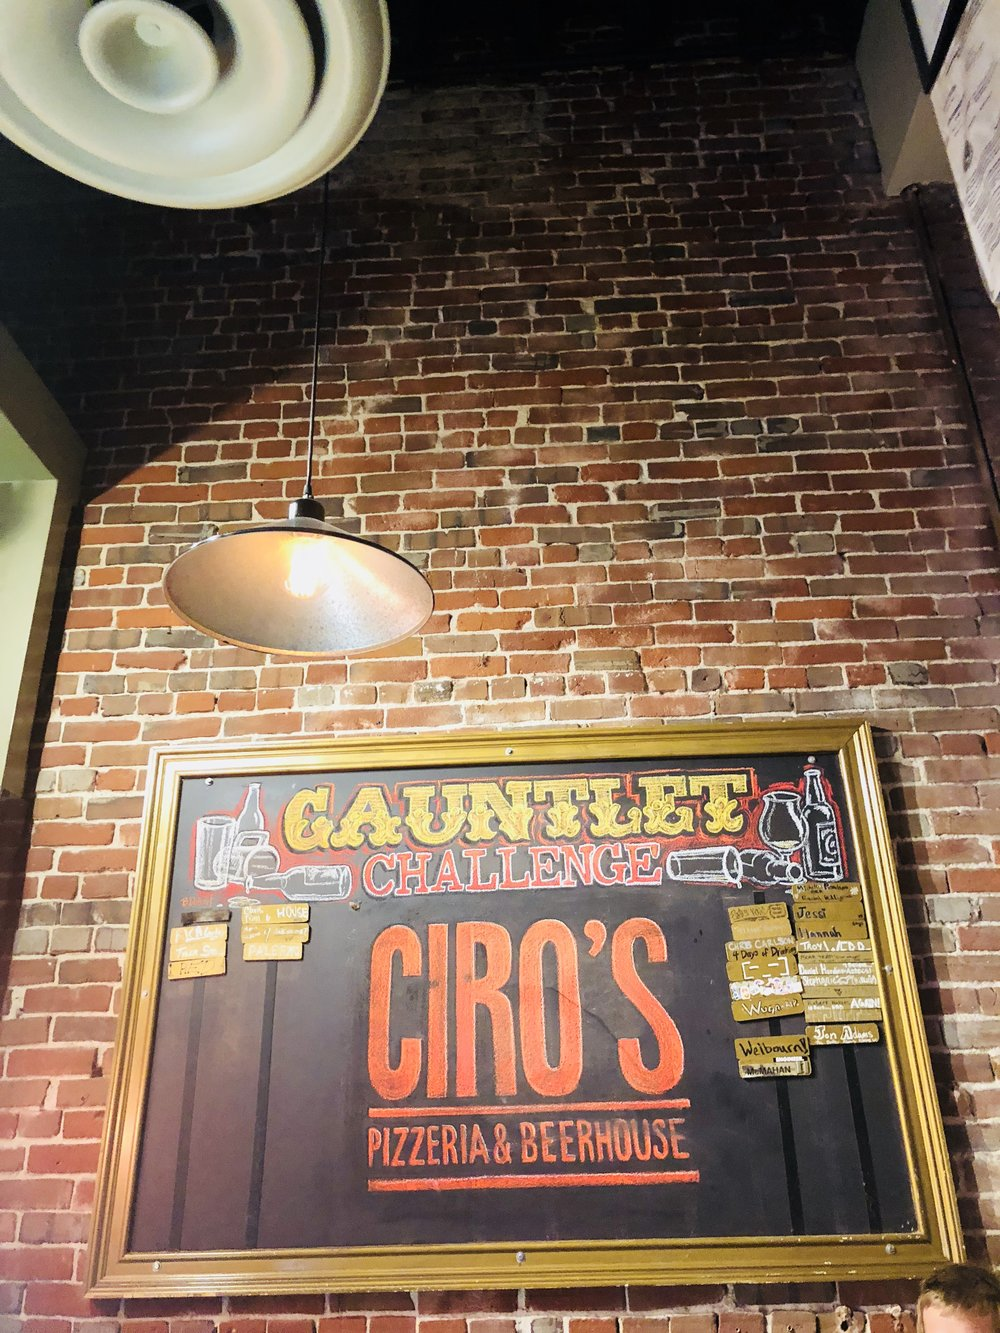 If you love pizza you definitely have to give this place a try!